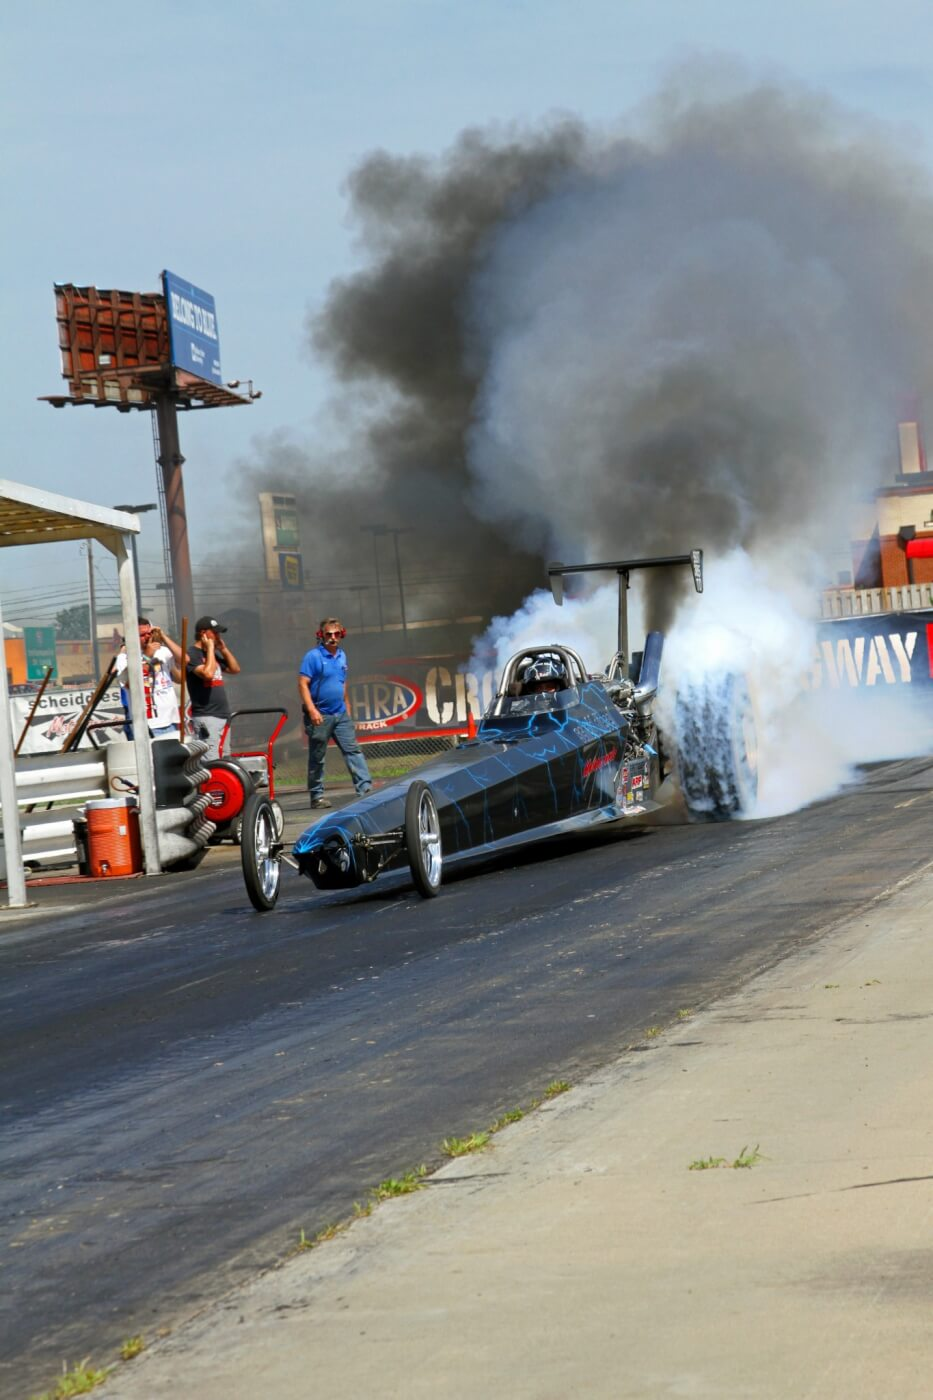 The Scheid Diesel dragster is an awesome sight and we love to shoot pictures of it flying down the track, but it's so much better in person. If you get a chance to go to one of the major diesel events you're likely to see it run and that alone is worth the price of admission.